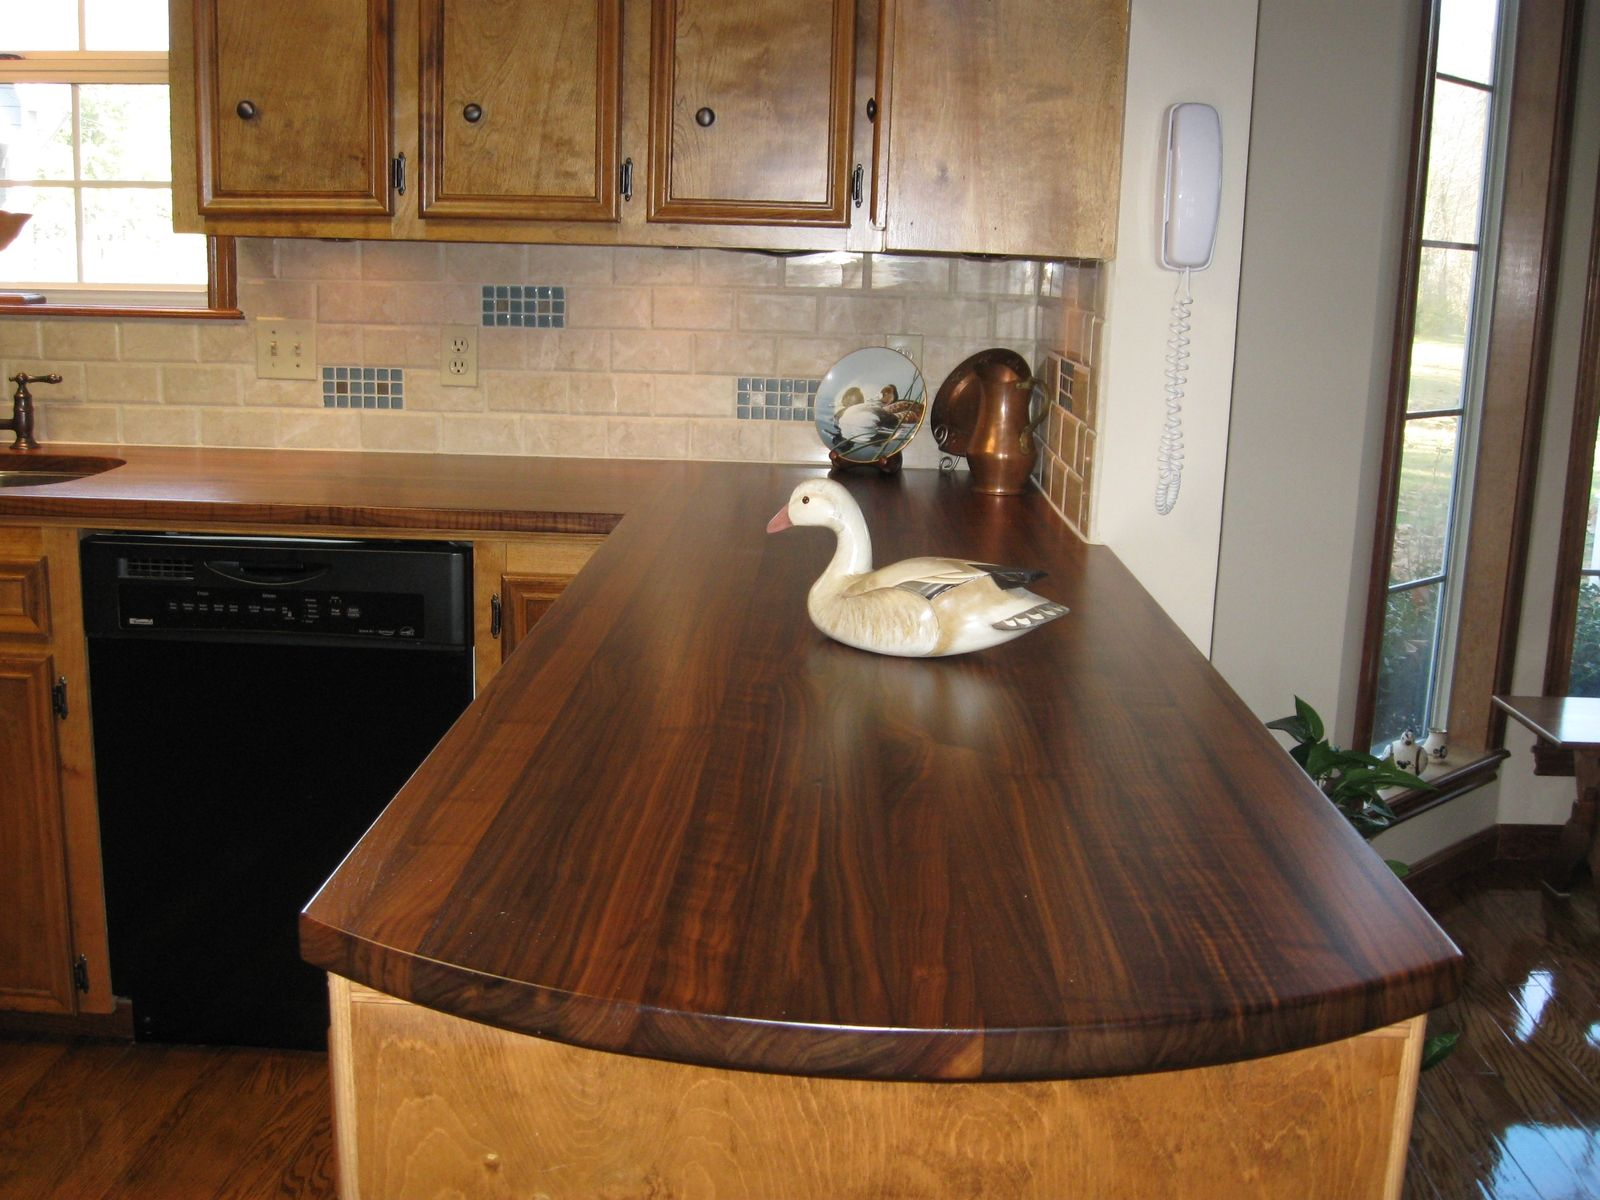 Custom walnut kitchen countertops by craft art direct for Walnut kitchen designs